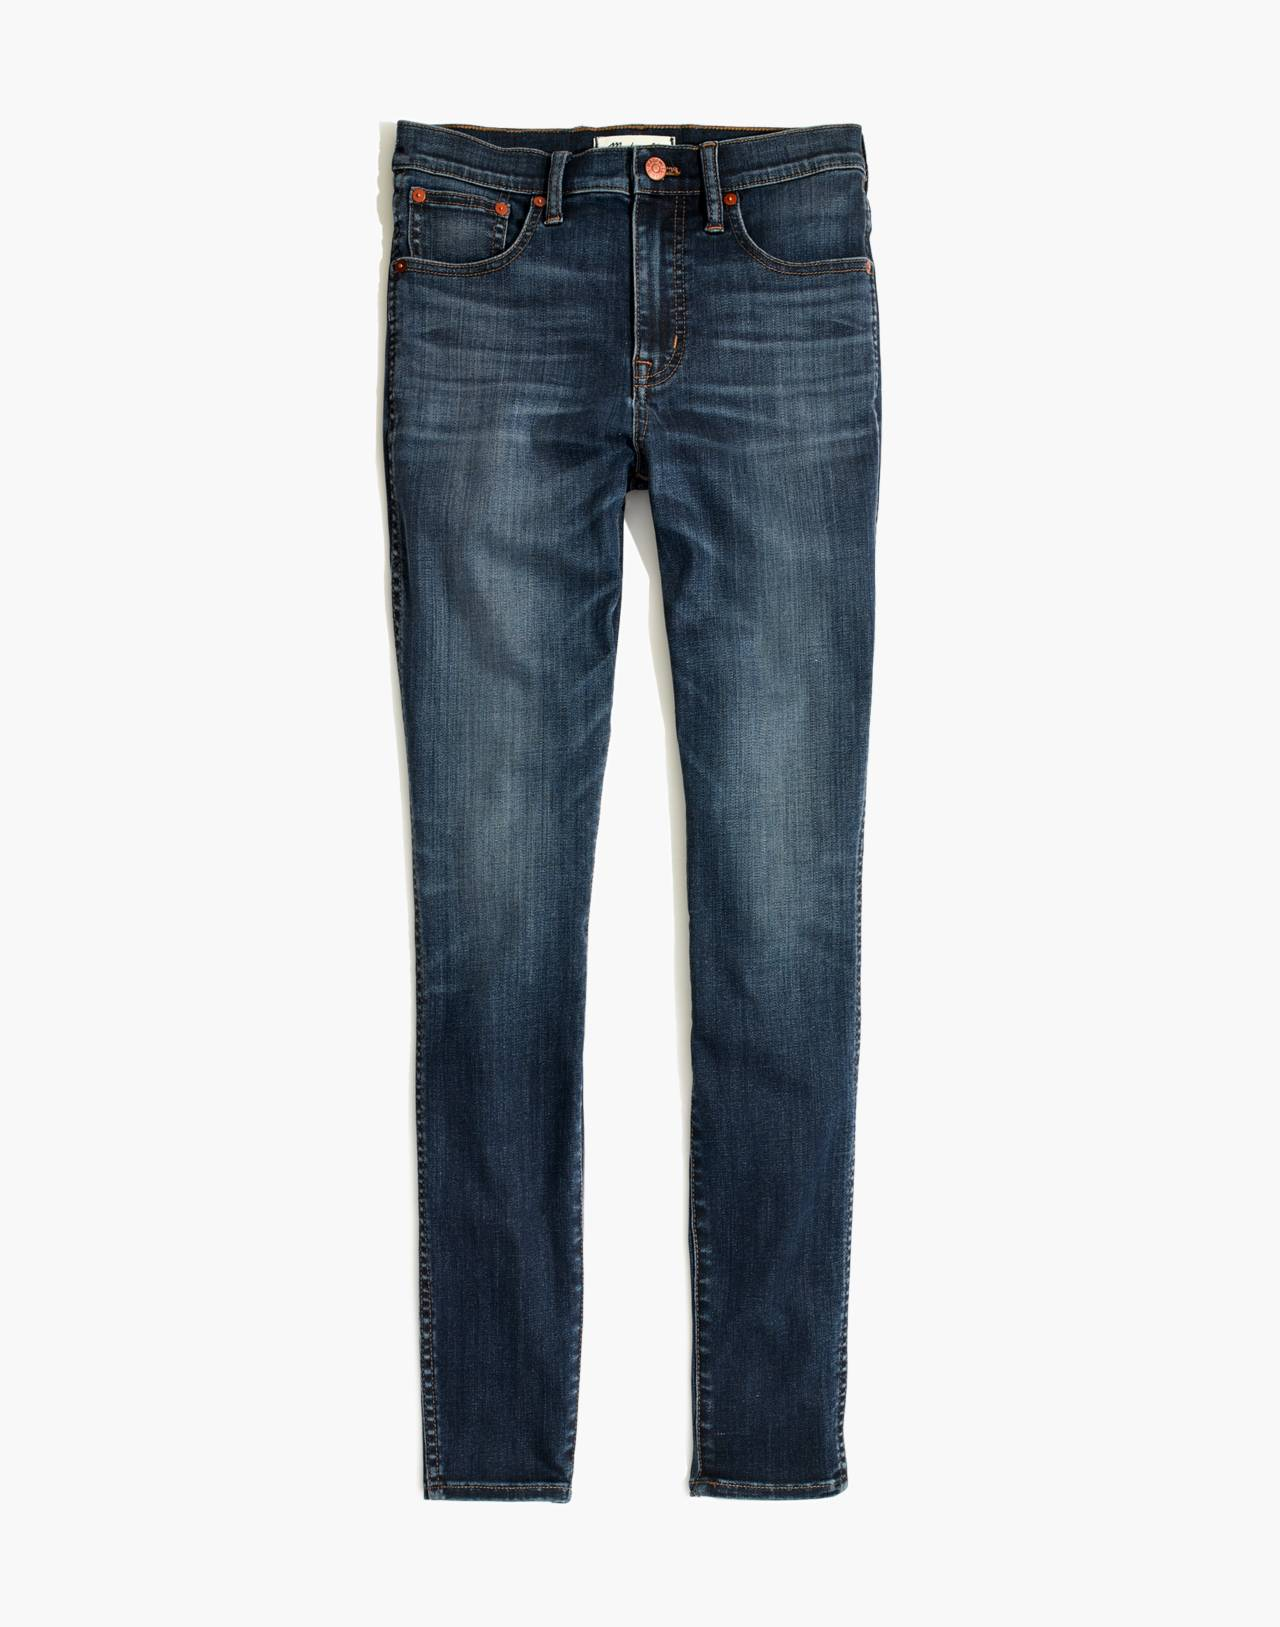 "10"" High-Rise Skinny Jeans in Danny Wash: Tencel™ Edition in danny image 4"